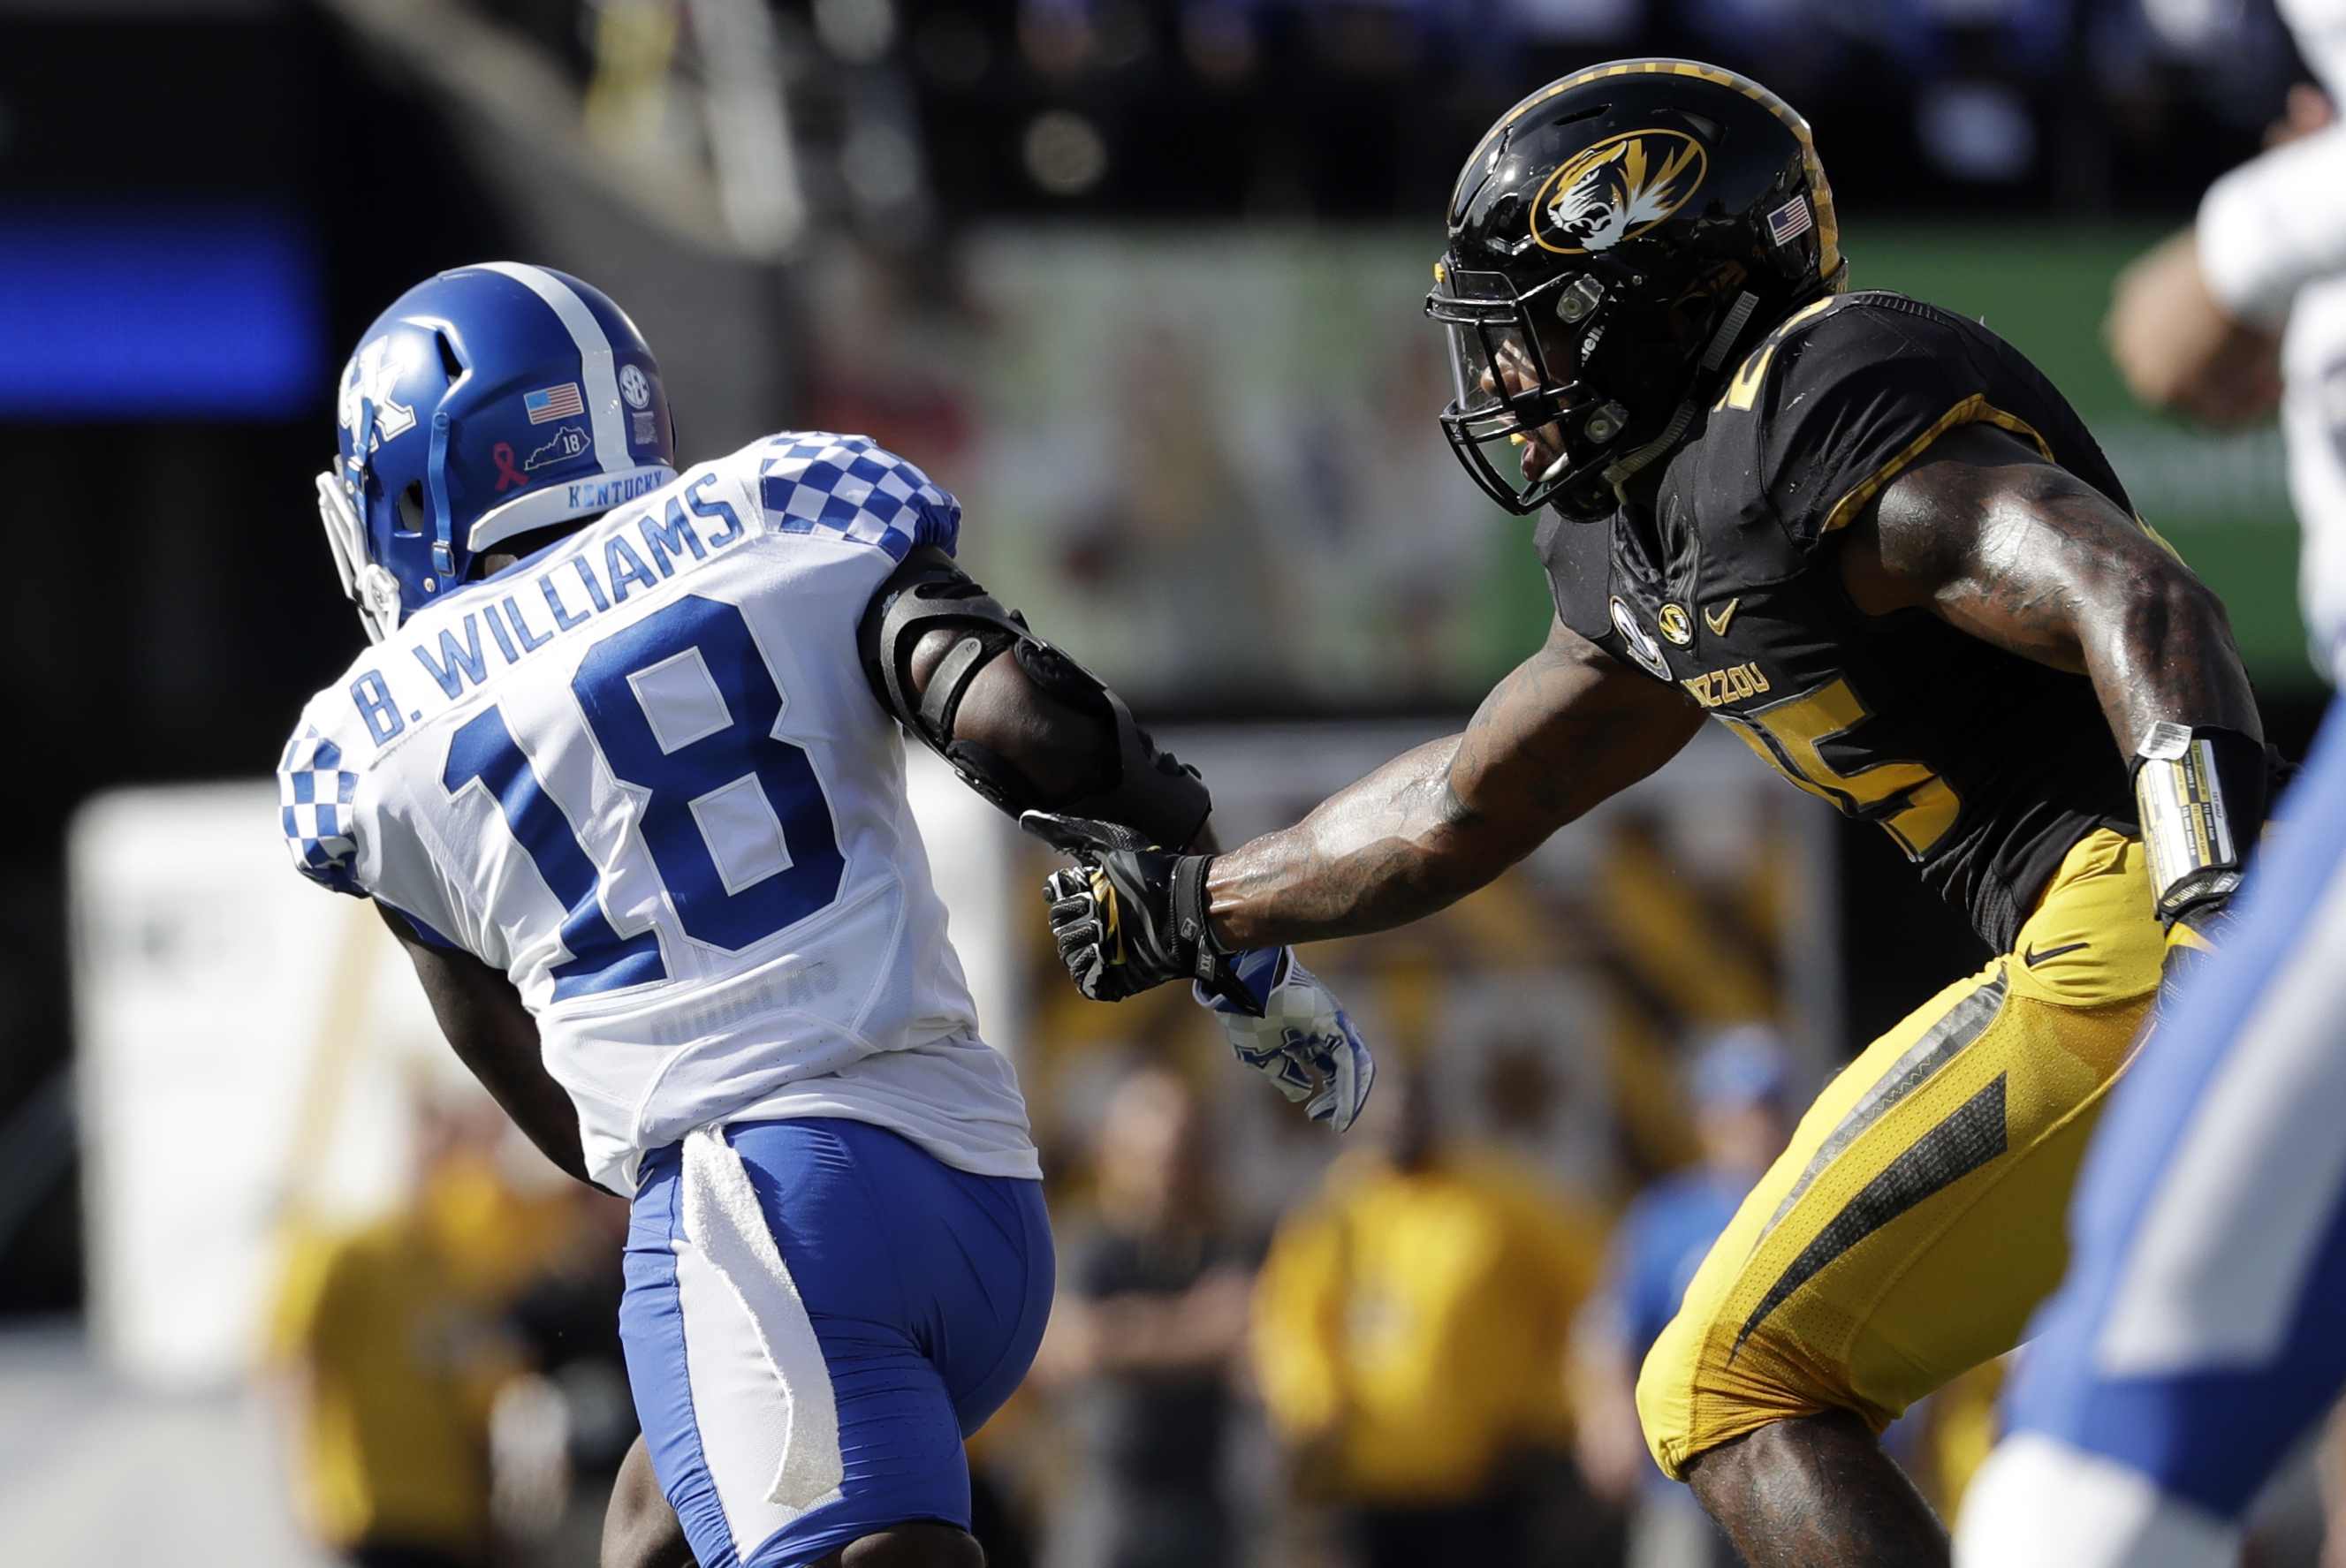 Kentucky running back Stanley Williams, left, slips past Missouri linebacker Donavin Newsom on his way to a 60-yard touchdown run during the first half of an NCAA college football game Saturday, Oct. 29, 2016, in Columbia, Mo. (AP Photo/Jeff Roberson)